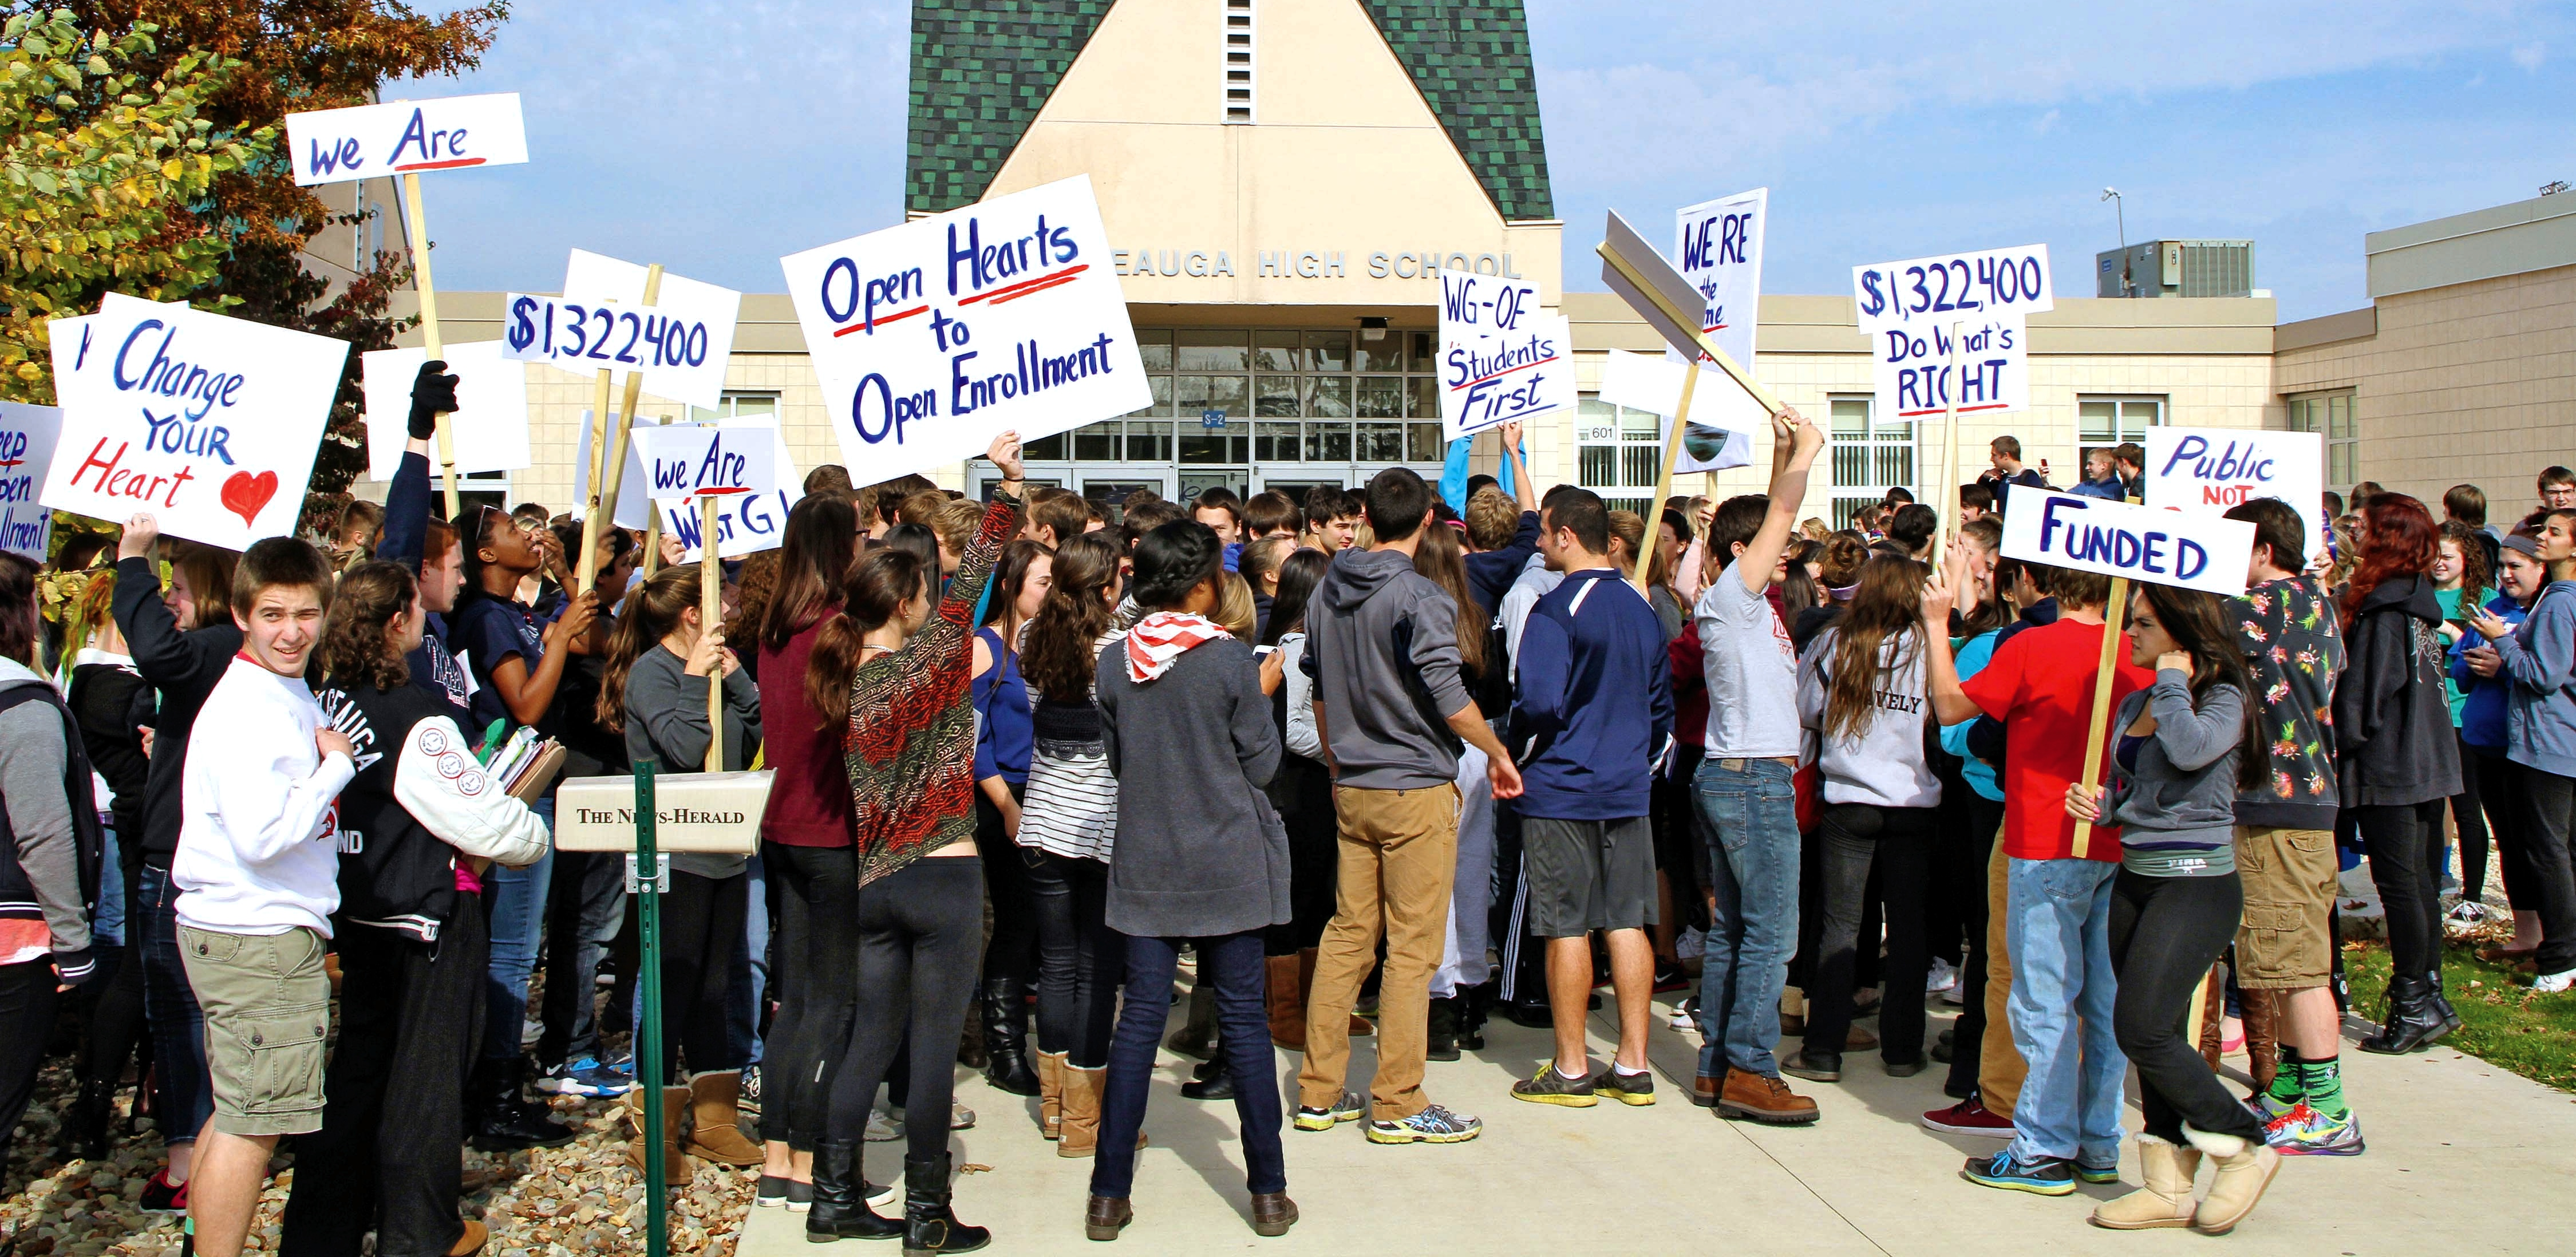 WGHS Students Walk Out in Support of Open Enrollment